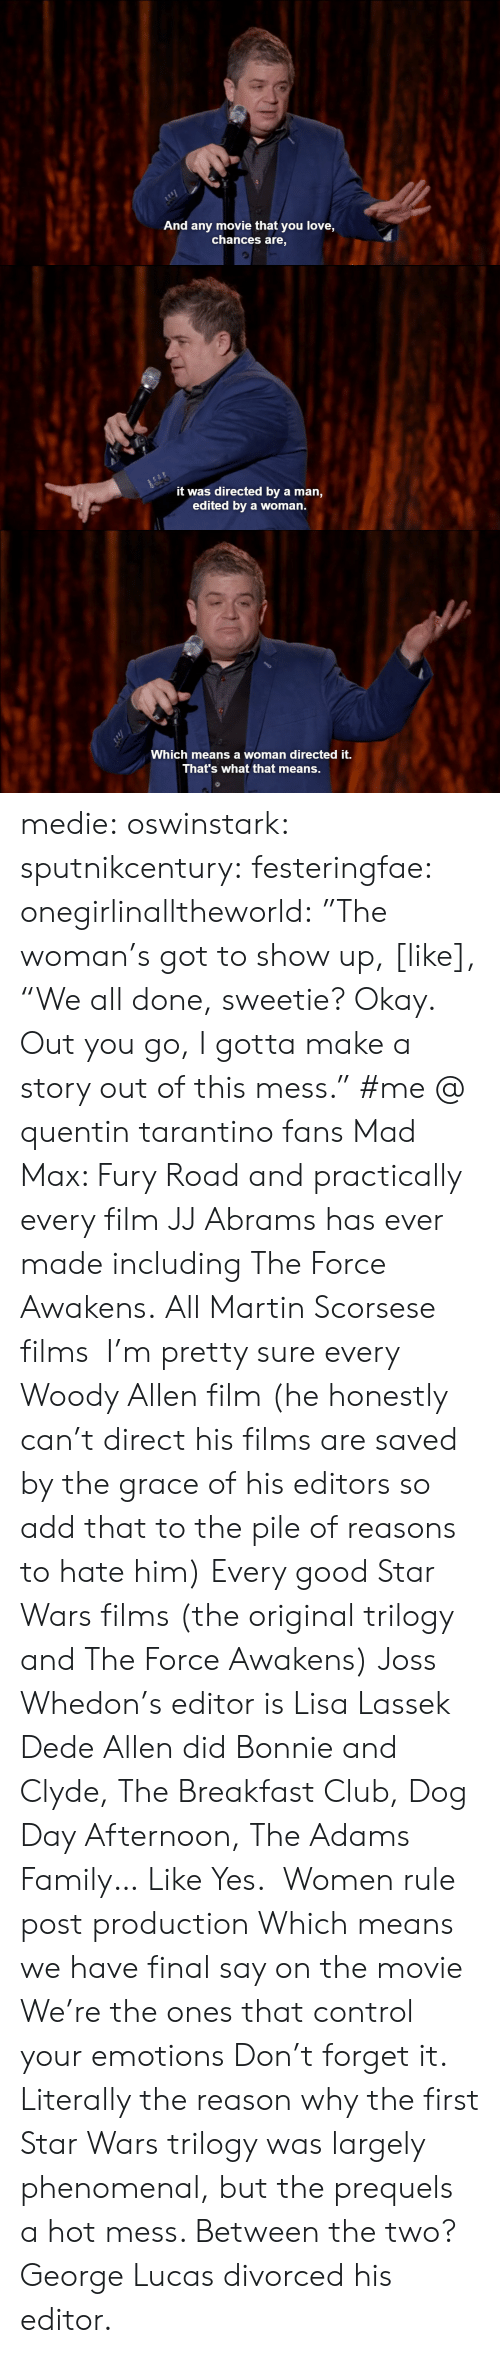 "Woody Allen: And any movie that you love,  chances are,   it was directed by a man,  edited by a woman.   c-  Which means a woman directed it.  That's what that means. medie:   oswinstark:  sputnikcentury:  festeringfae:  onegirlinalltheworld:  ""The woman's got to show up, [like], ""We all done, sweetie? Okay. Out you go, I gotta make a story out of this mess.""  #me @ quentin tarantino fans  Mad Max: Fury Road and practically every film JJ Abrams has ever made including The Force Awakens.  All Martin Scorsese films  I'm pretty sure every Woody Allen film (he honestly can't direct his films are saved by the grace of his editors so add that to the pile of reasons to hate him) Every good Star Wars films (the original trilogy and The Force Awakens) Joss Whedon's editor is Lisa Lassek Dede Allen did Bonnie and Clyde, The Breakfast Club, Dog Day Afternoon, The Adams Family… Like Yes.  Women rule post production Which means we have final say on the movie We're the ones that control your emotions Don't forget it.  Literally the reason why the first Star Wars trilogy was largely phenomenal, but the prequels a hot mess.  Between the two? George Lucas divorced his editor."